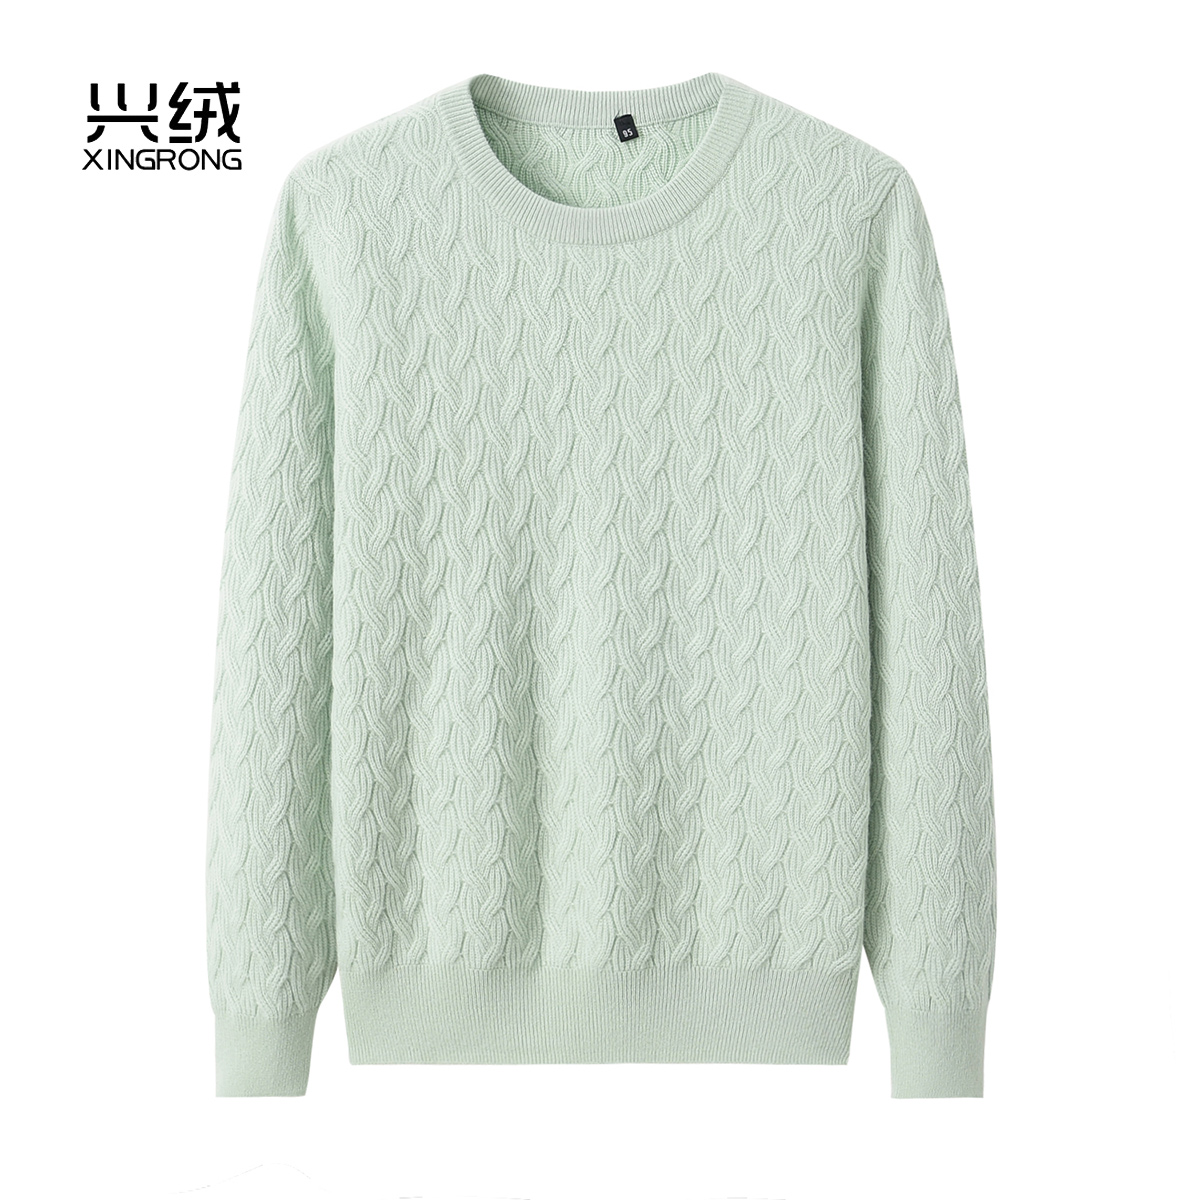 Inner Mongolia 100 pure cashmere sweater womens round neck thickened hollow out solid color knitting loose bottomed sweater autumn and winter new